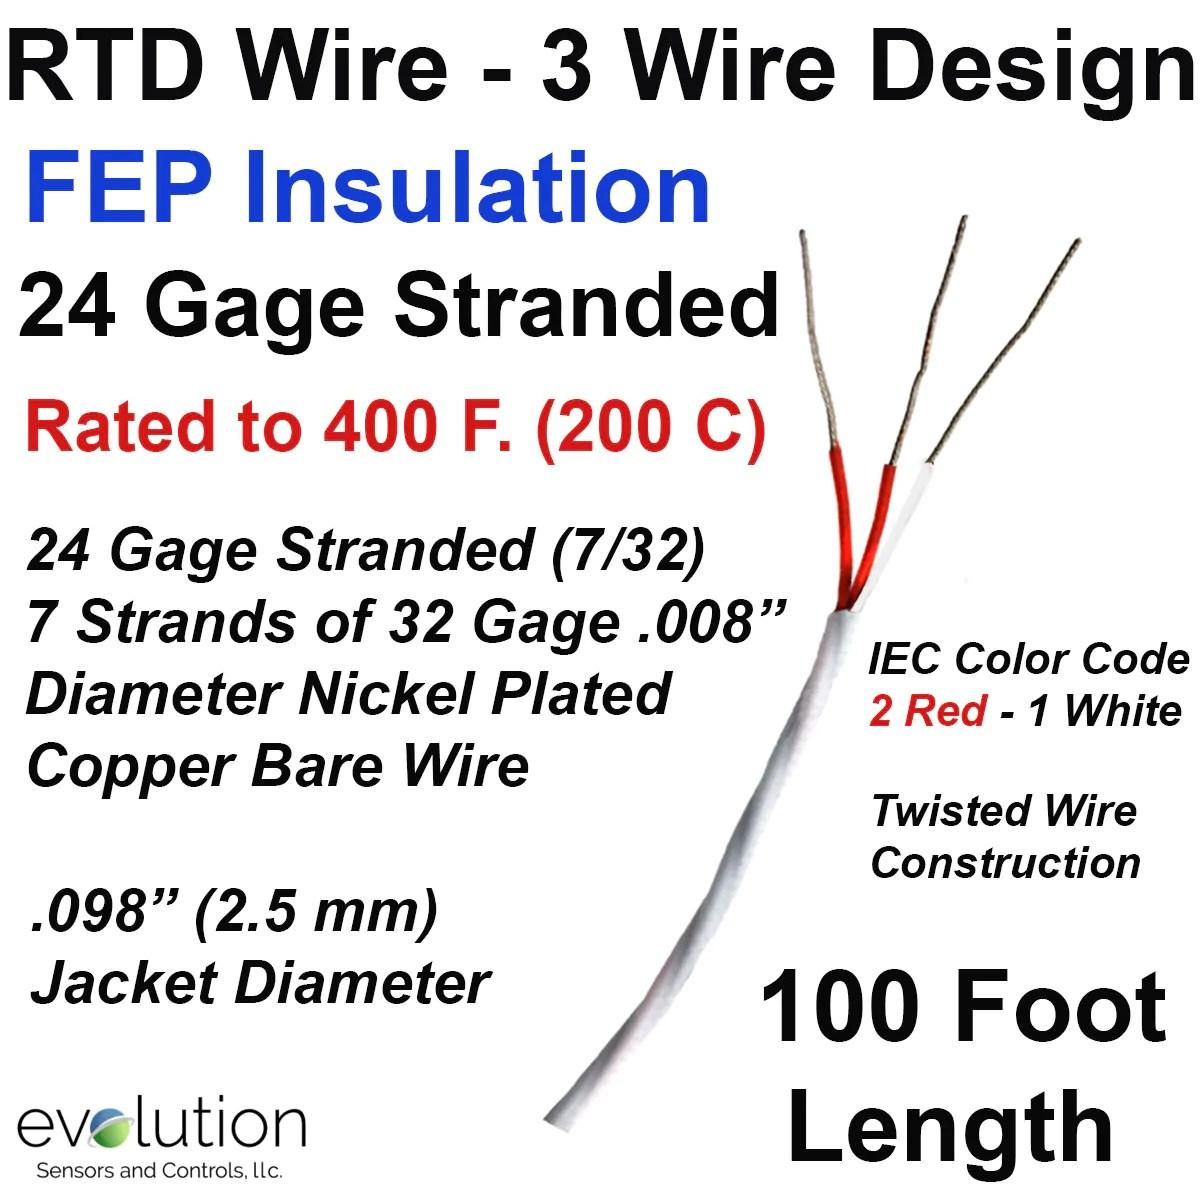 medium resolution of rtd wiring color code wiring diagram page 3 wire rtd wiring color code rtd wiring color code